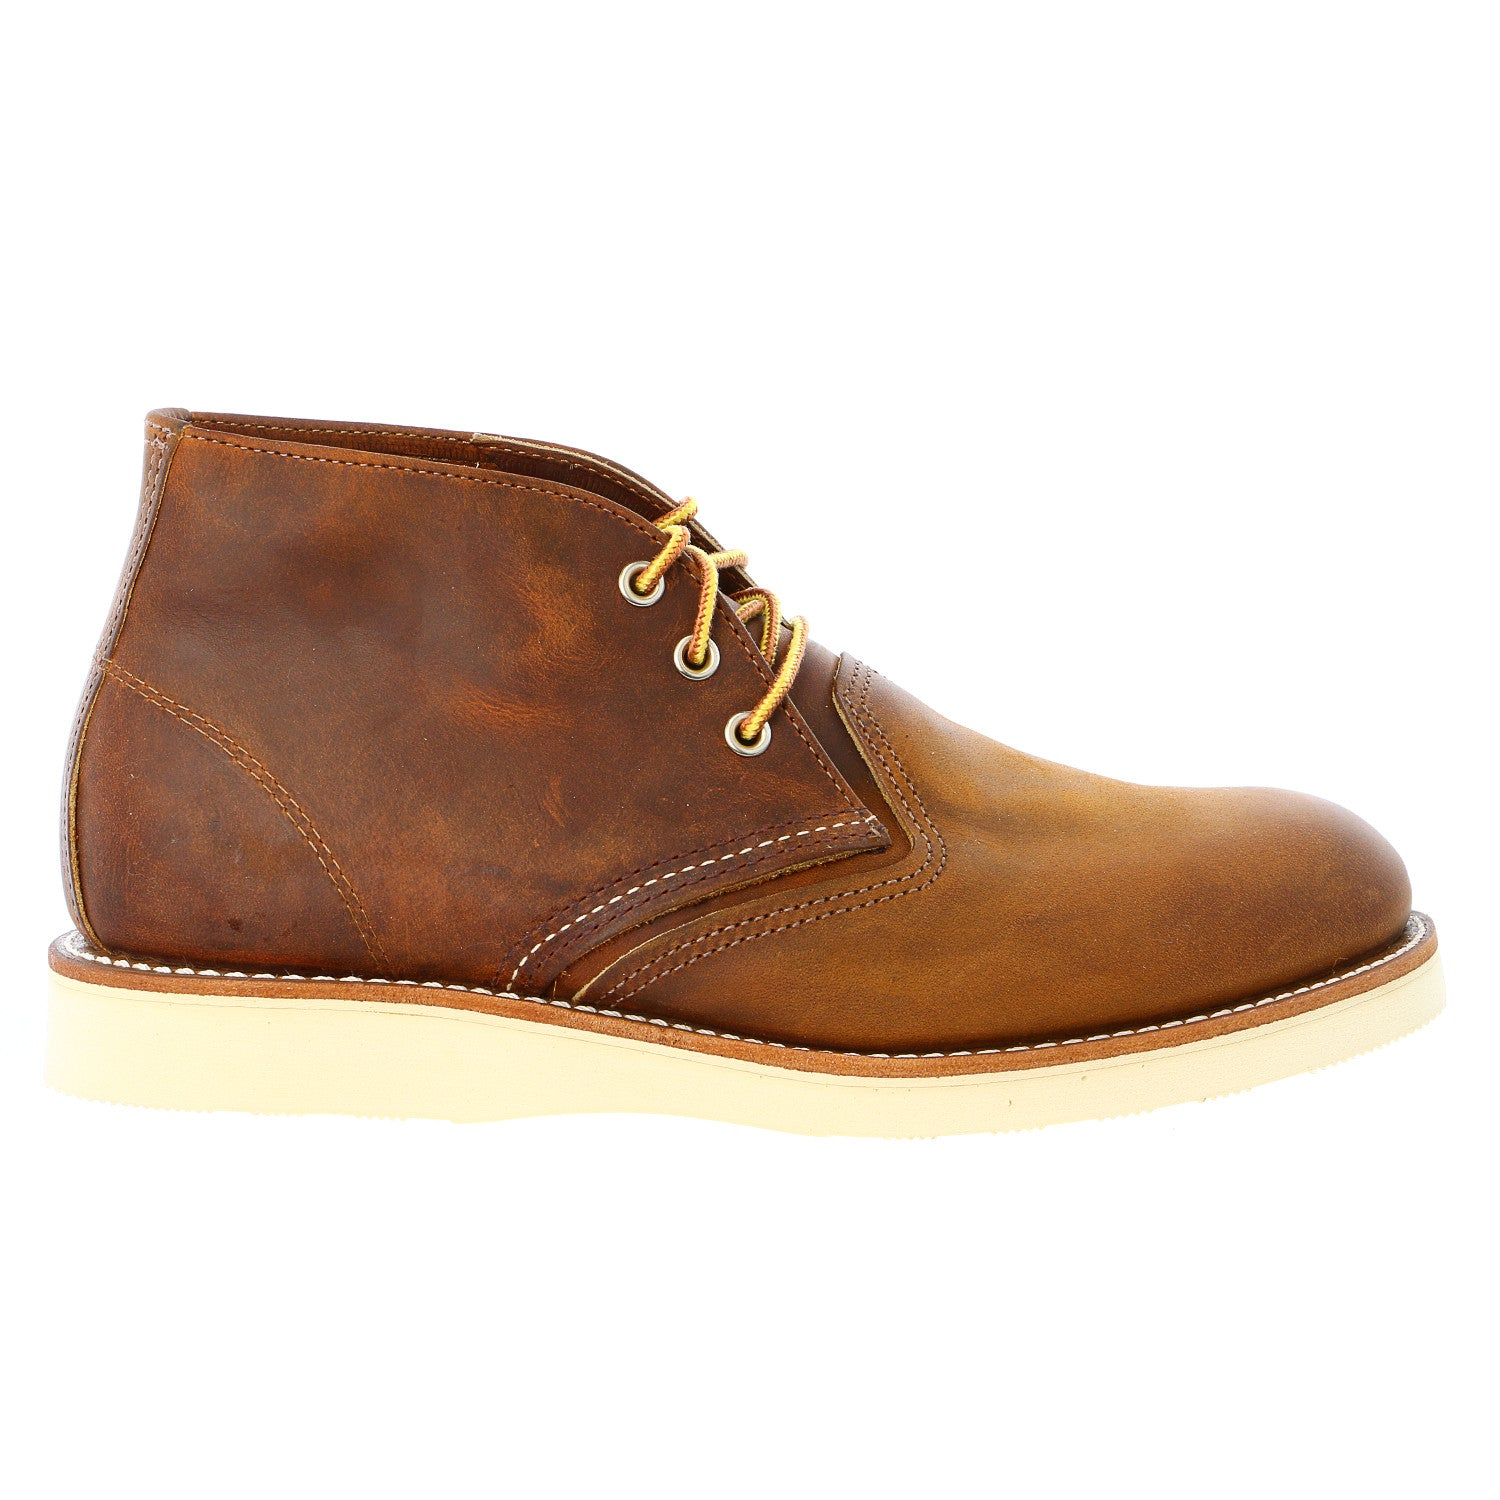 755871db1 Red Wing Heritage Men's Classic Work Leather Chukka Boot - Mens ...